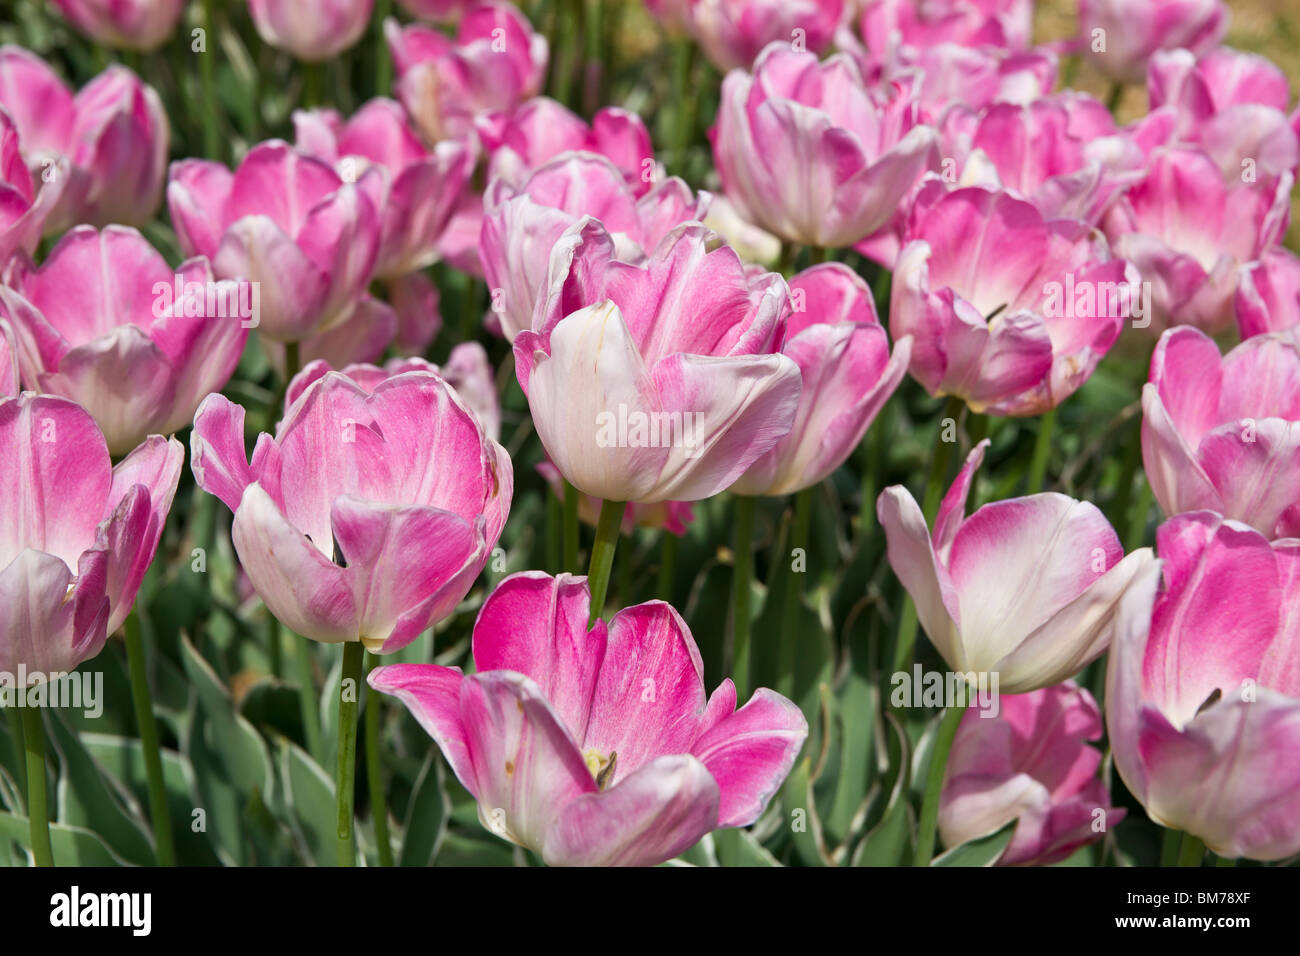 Pink and white Apricot Beauty tulips in a flowering garden in Holland Michigan - Stock Image